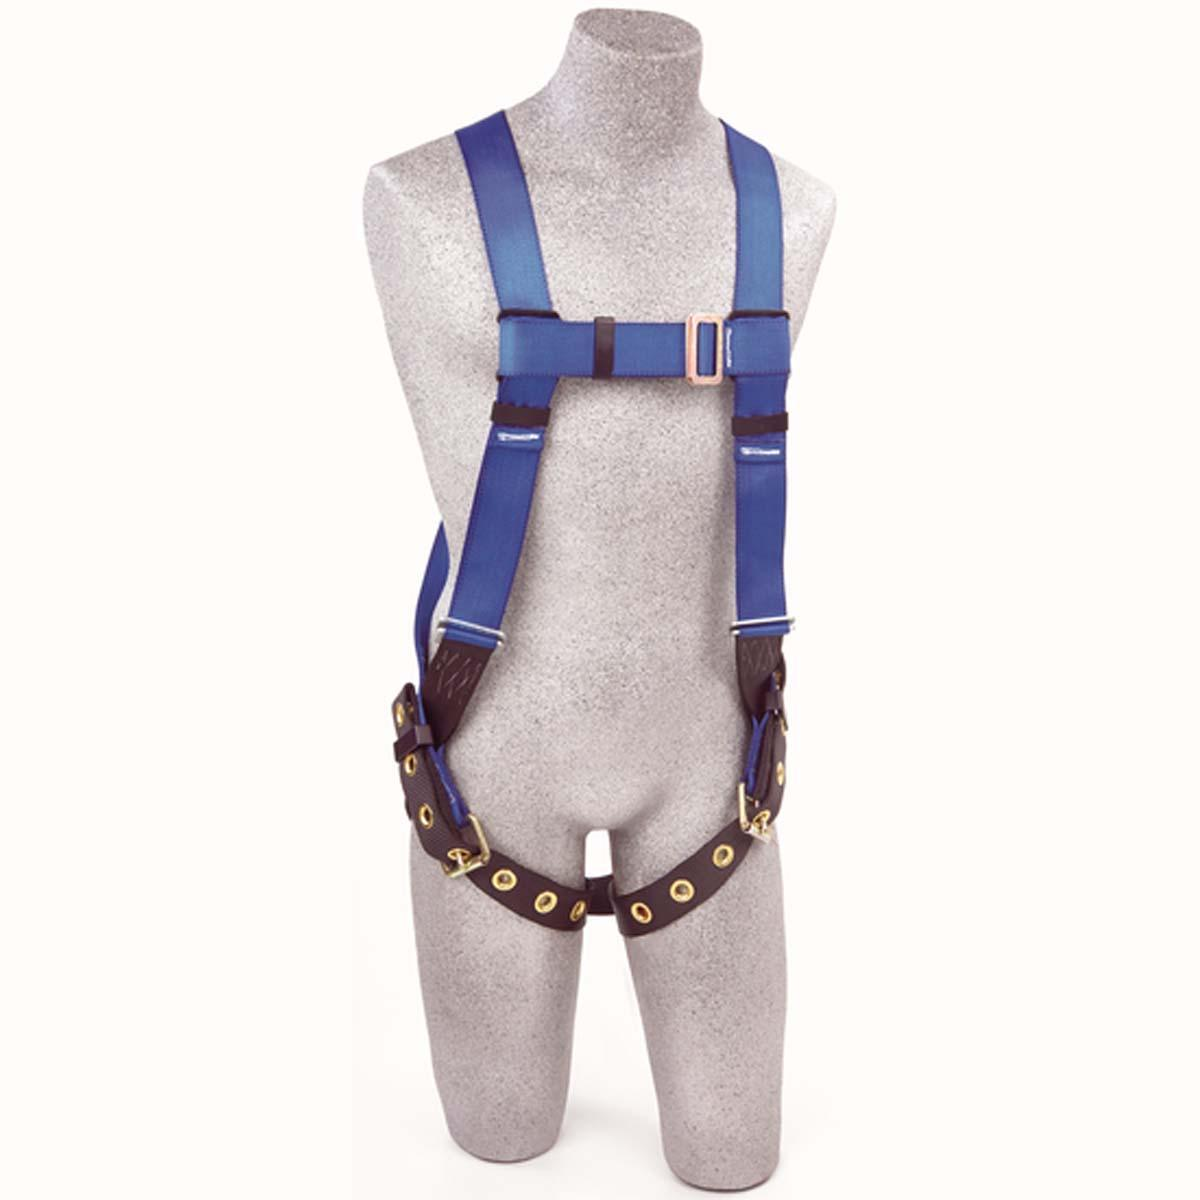 "FIRSTâ""¢ Vest-Style Harness"